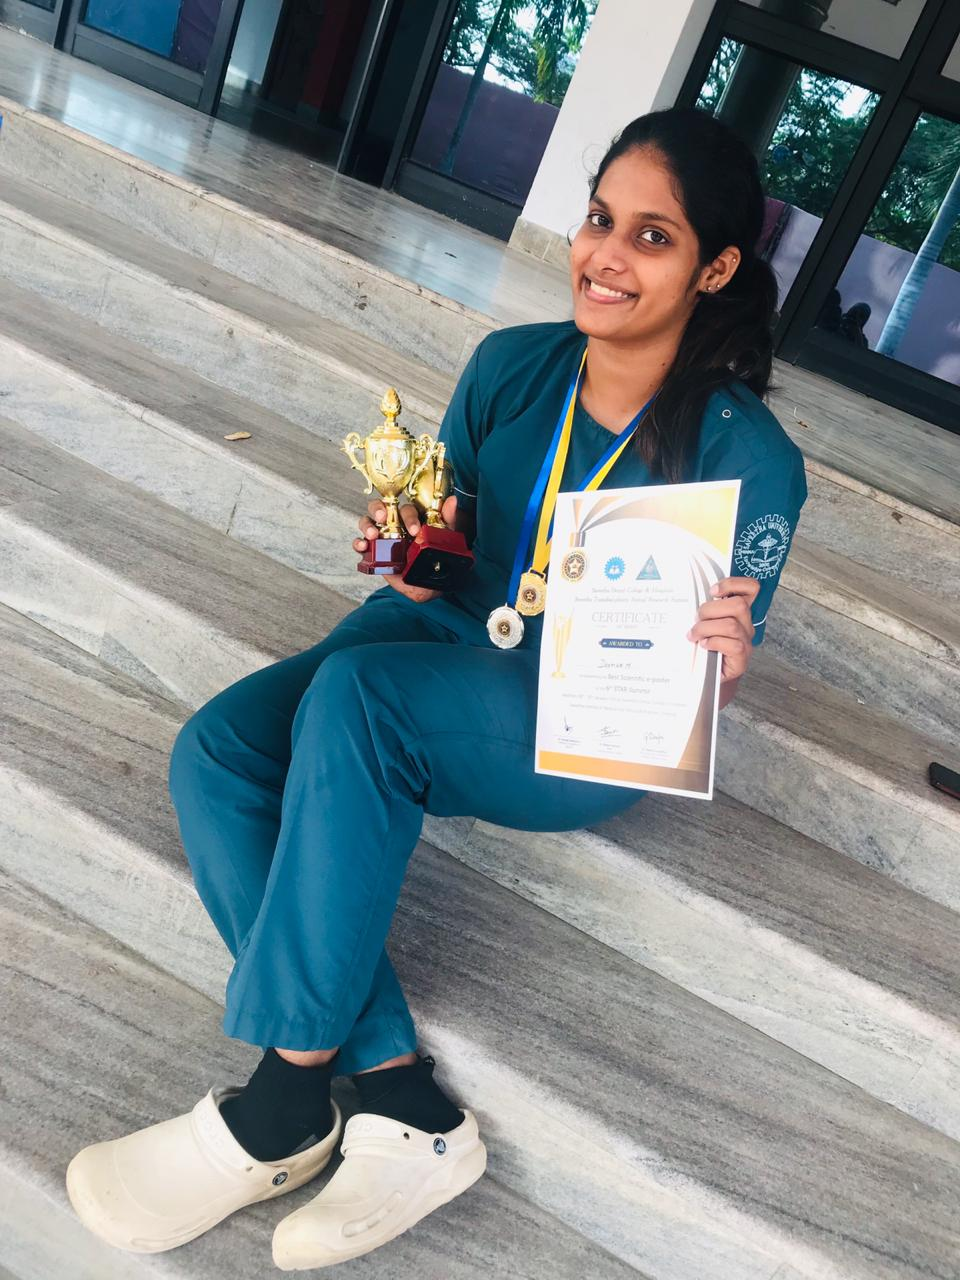 Best PG Poster Award (STAR SUMMIT 2019) - Post graduate student Dr. Deepiga getting the 'Best Poster Award' for presenting poster in the STAR SUMMIT 2019